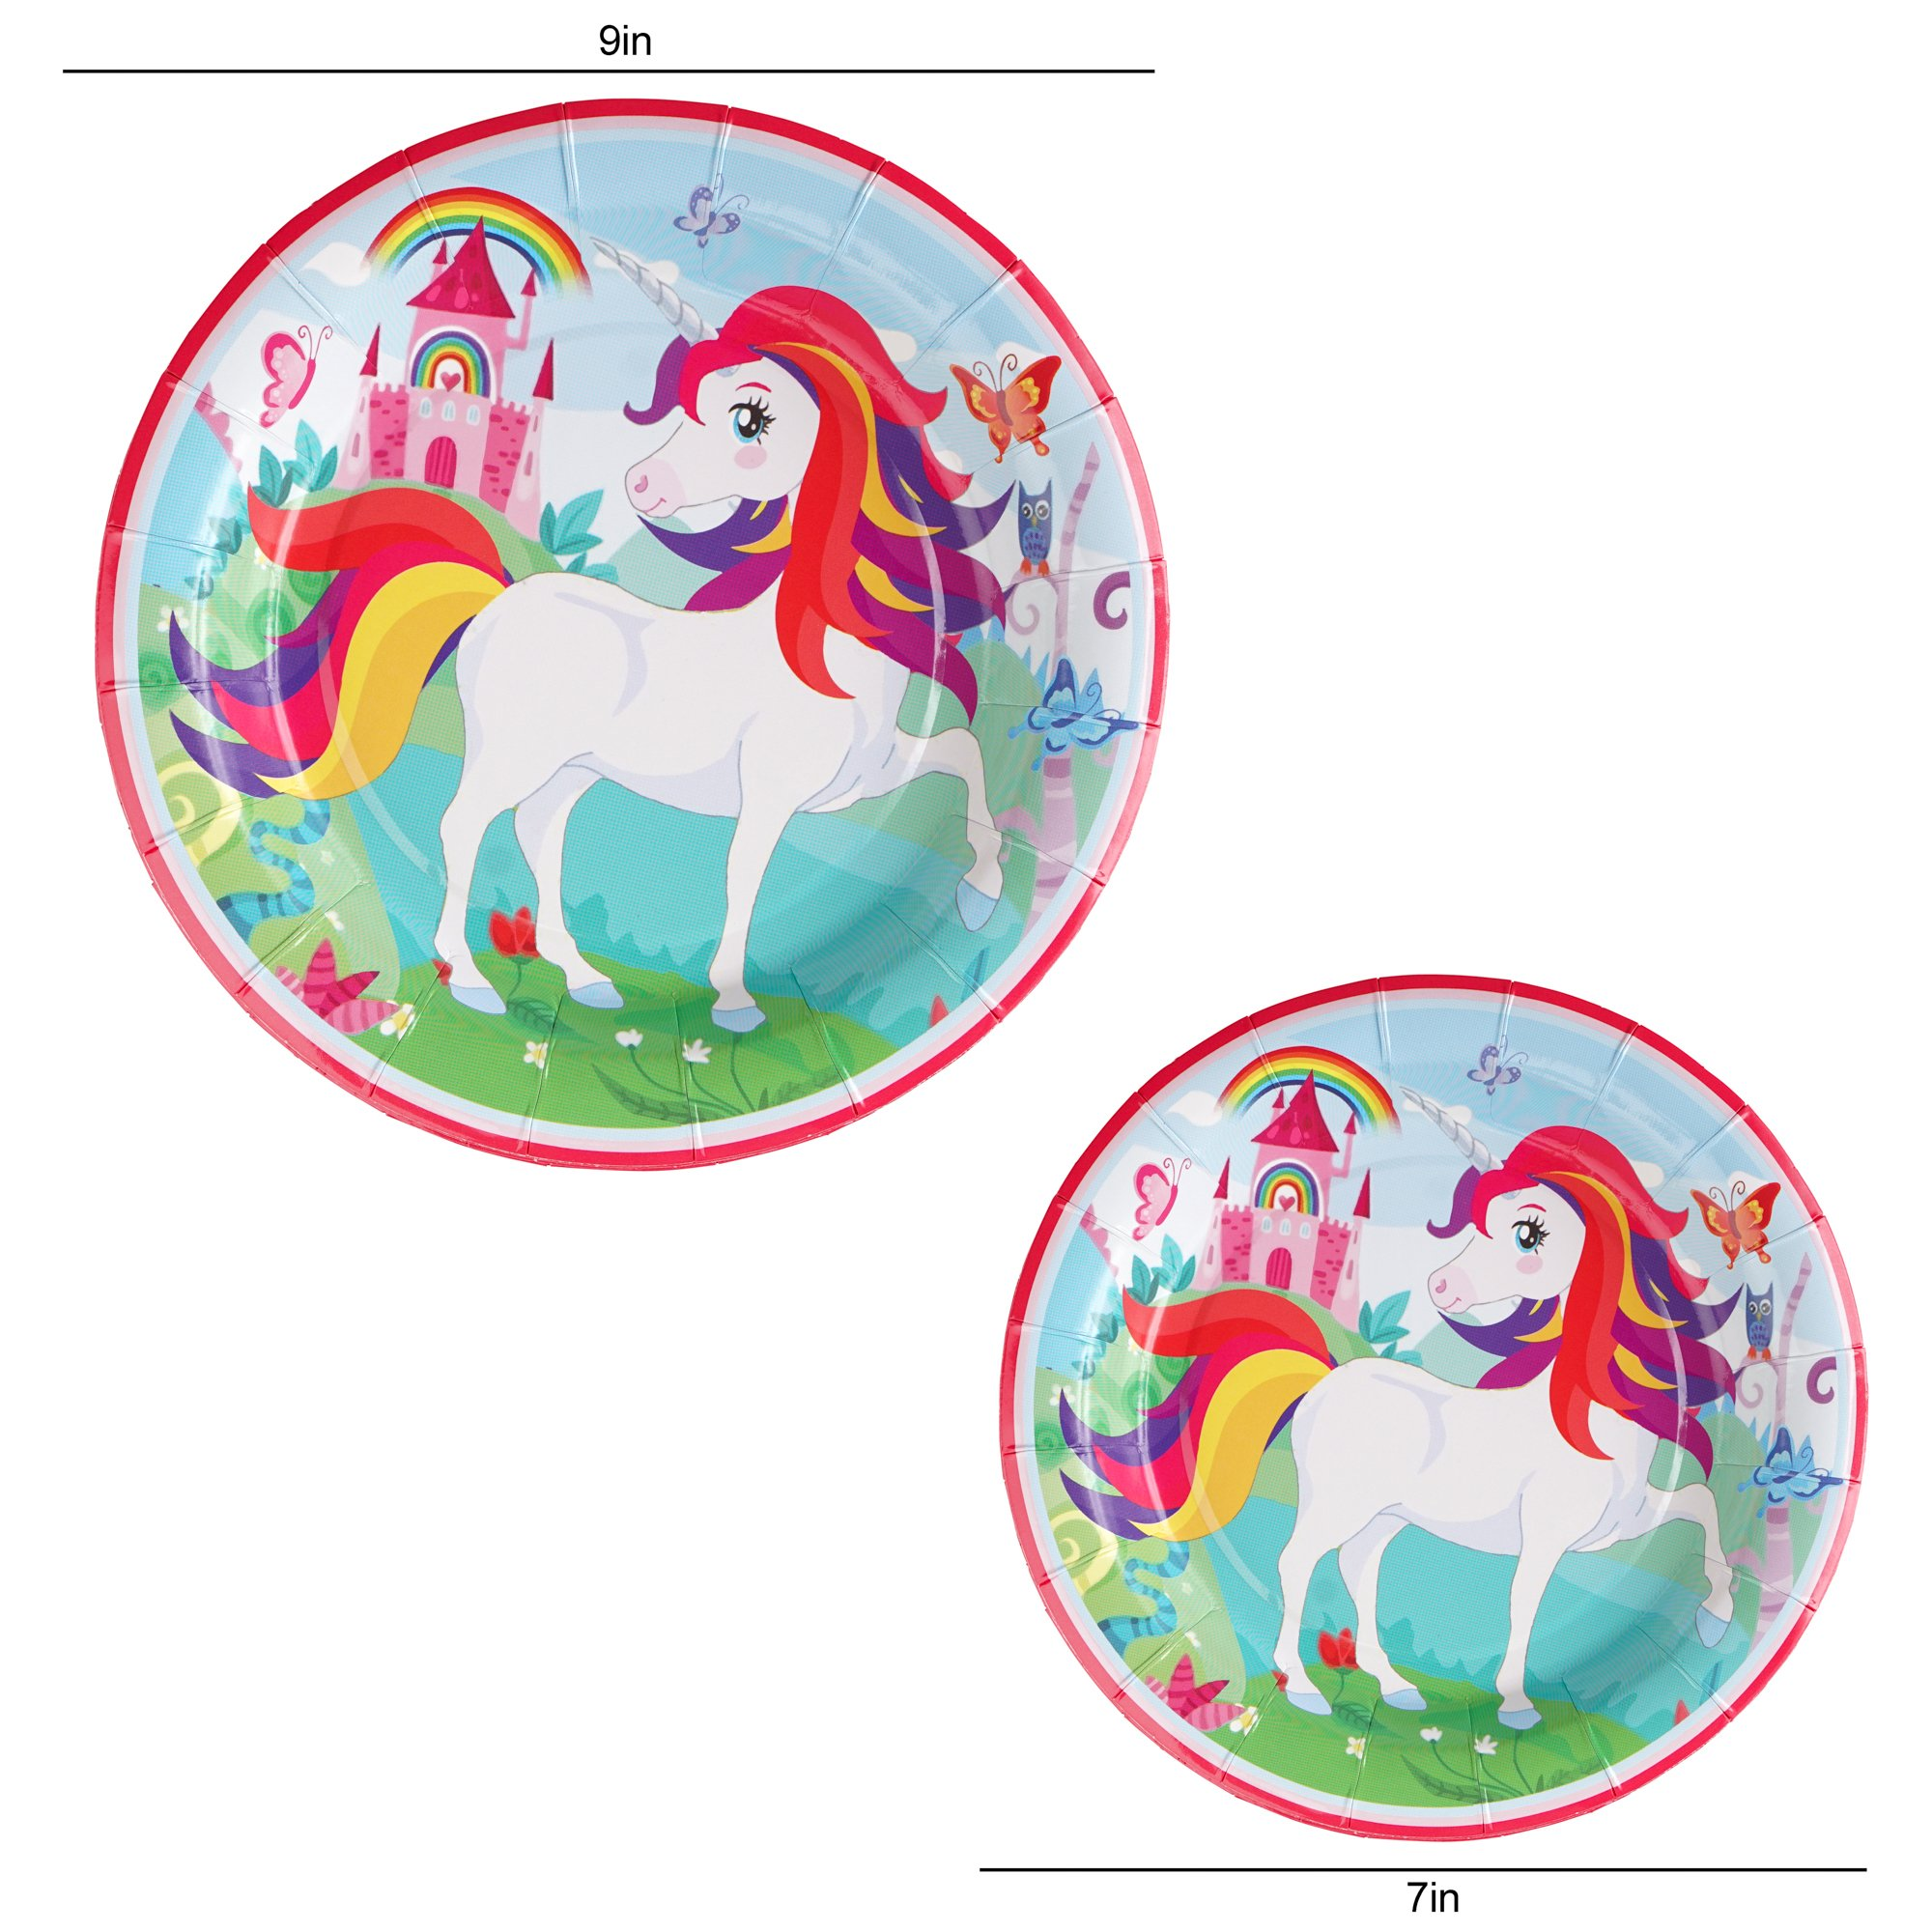 82 Piece Unicorn Party Supplies Set Including Banner, Plates, Cups, Napkins and Tablecloth, Serves 20 by Scale Rank (Image #4)